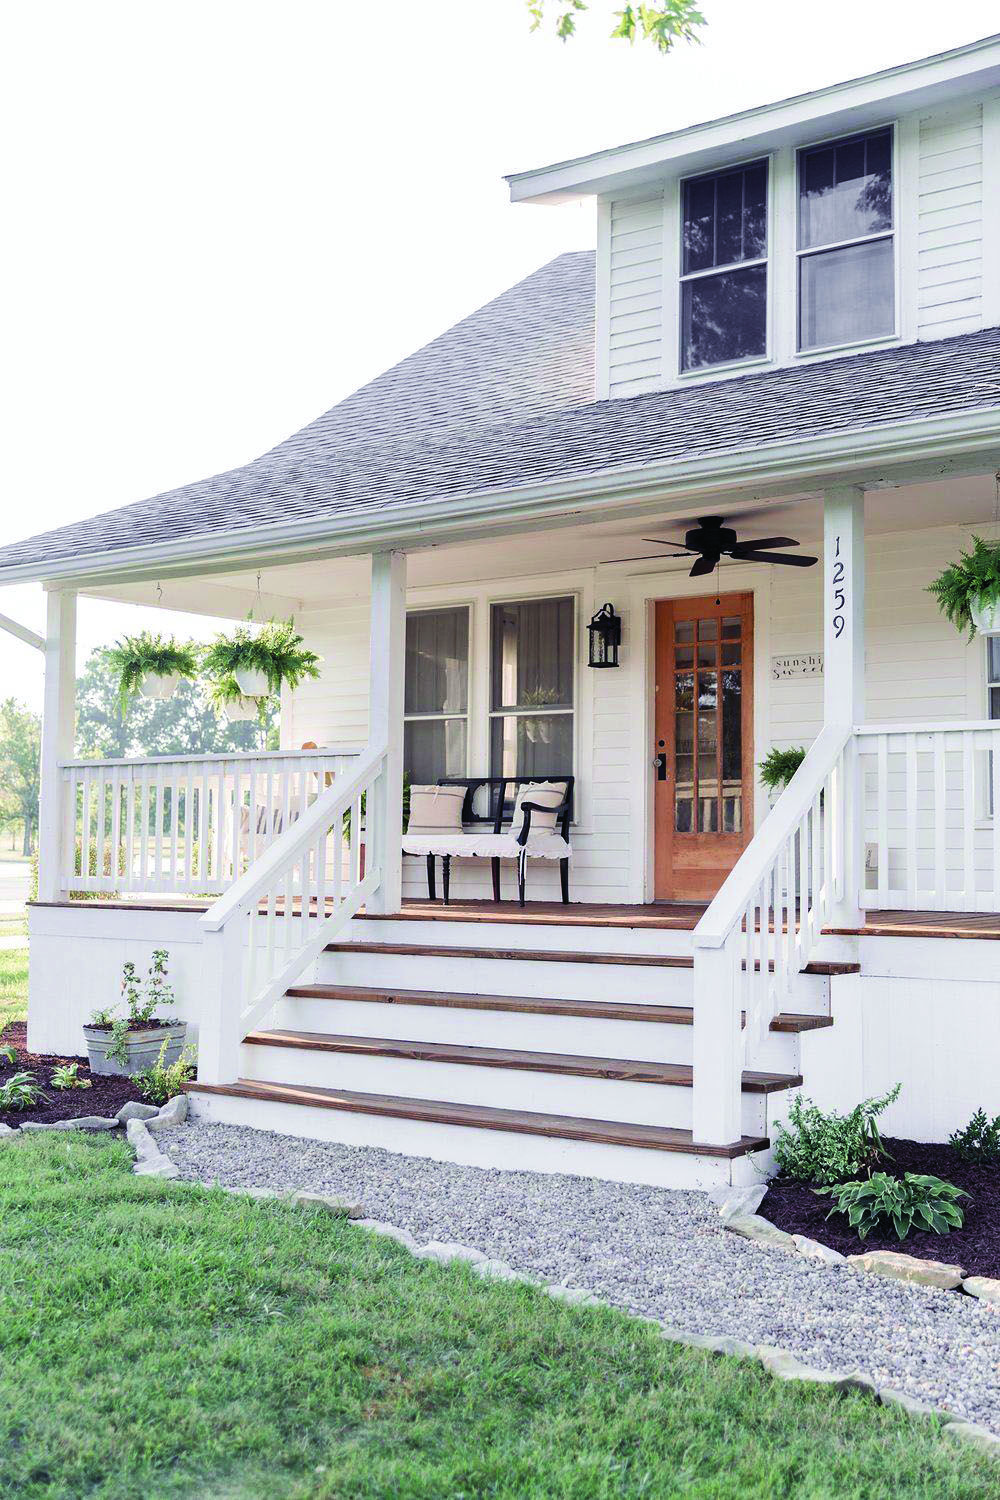 Discover bungalow style homes for sale near me made easy ...